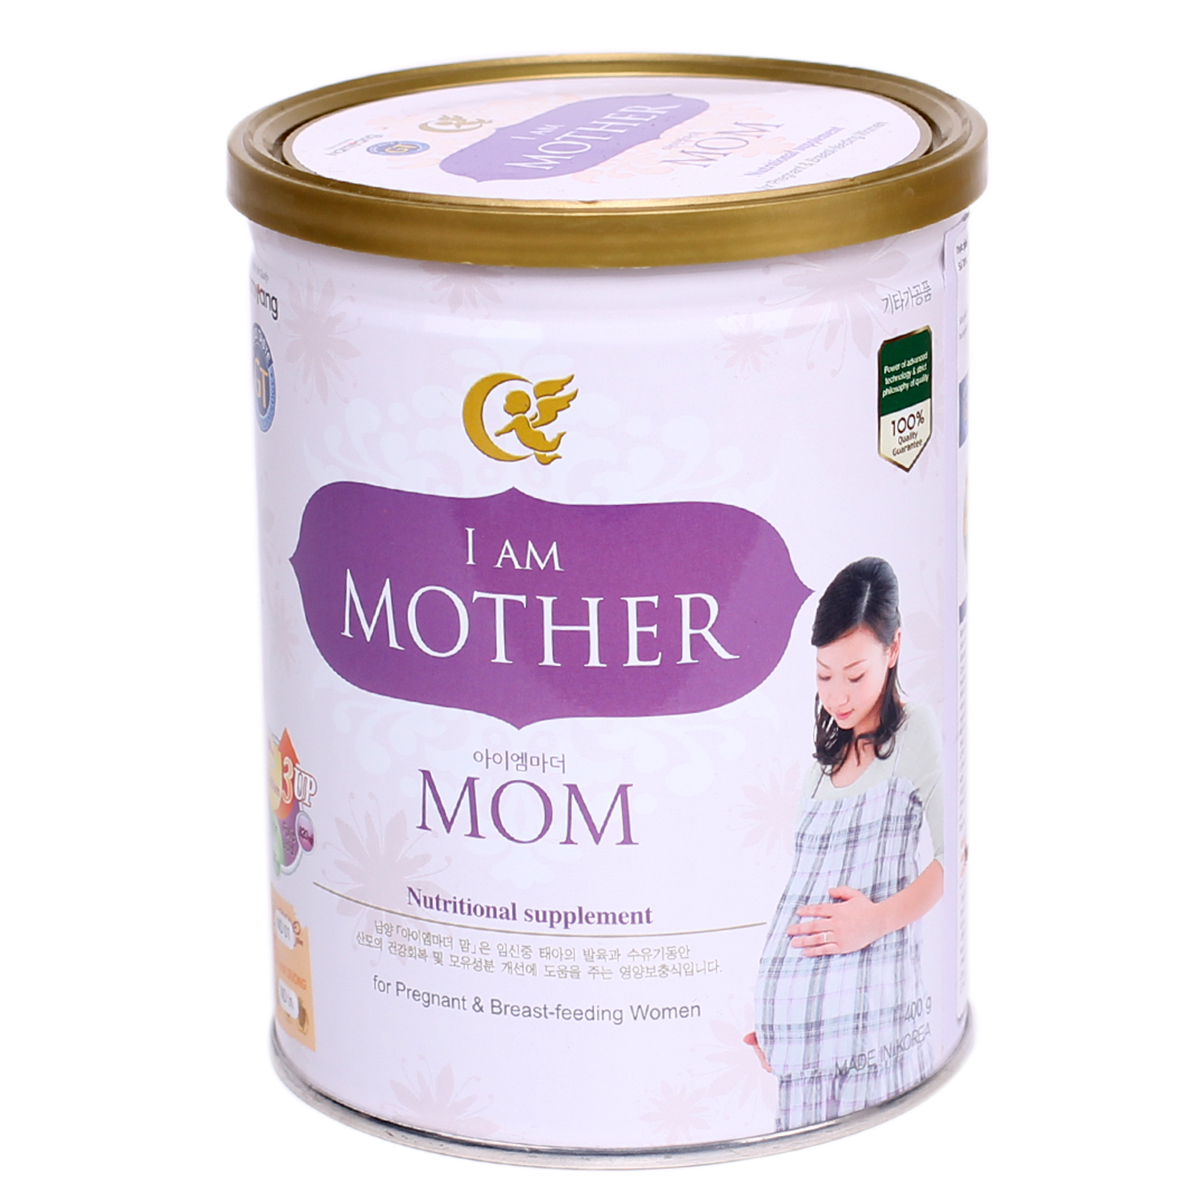 Sua I am Mother Mom - 400g